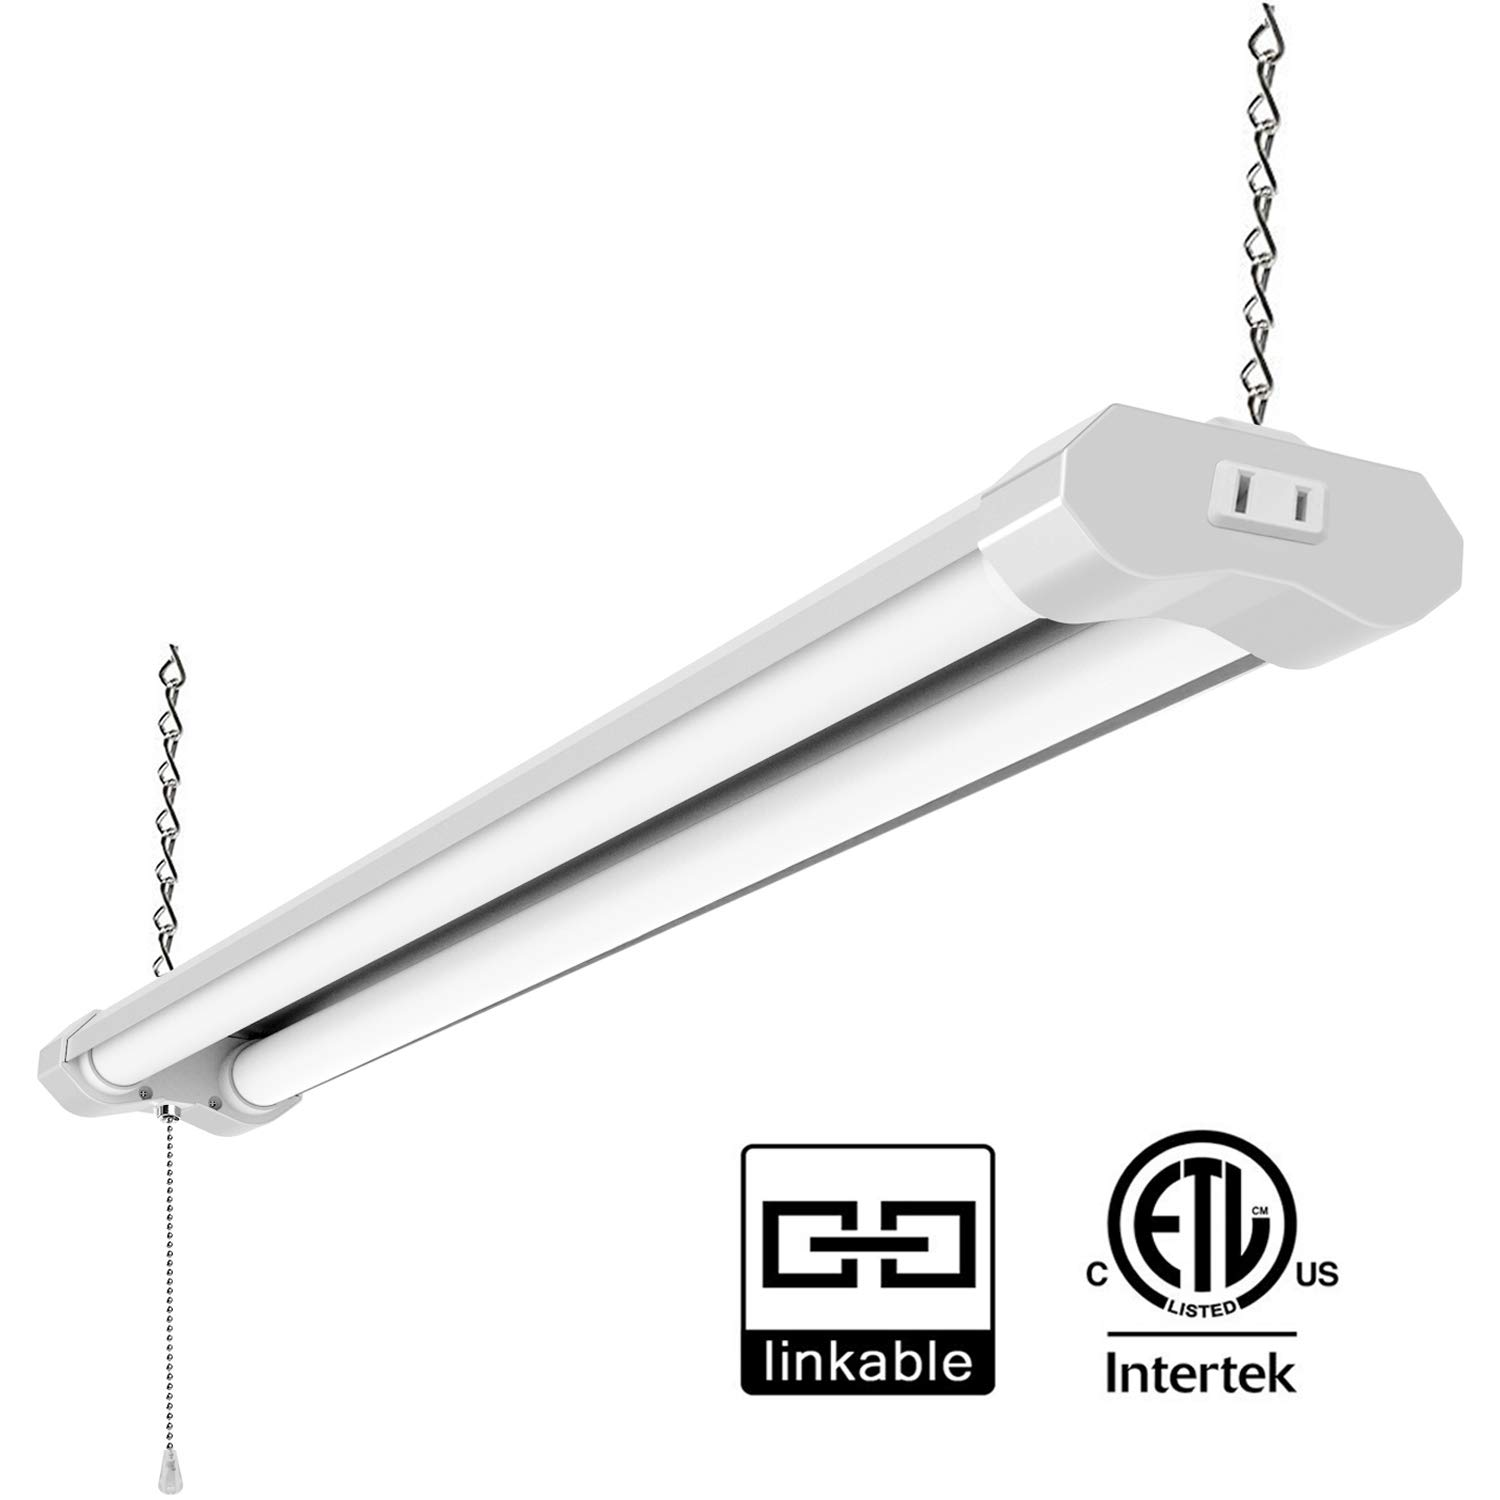 Lzhome Linkable LED Shop Light for garages,4FT 4500LM,40W 5000K Daylight White, LED Wrapround Light, with Pull Chain (ON/Off),Linear Worklight Fixture with Plug (1 Pack)